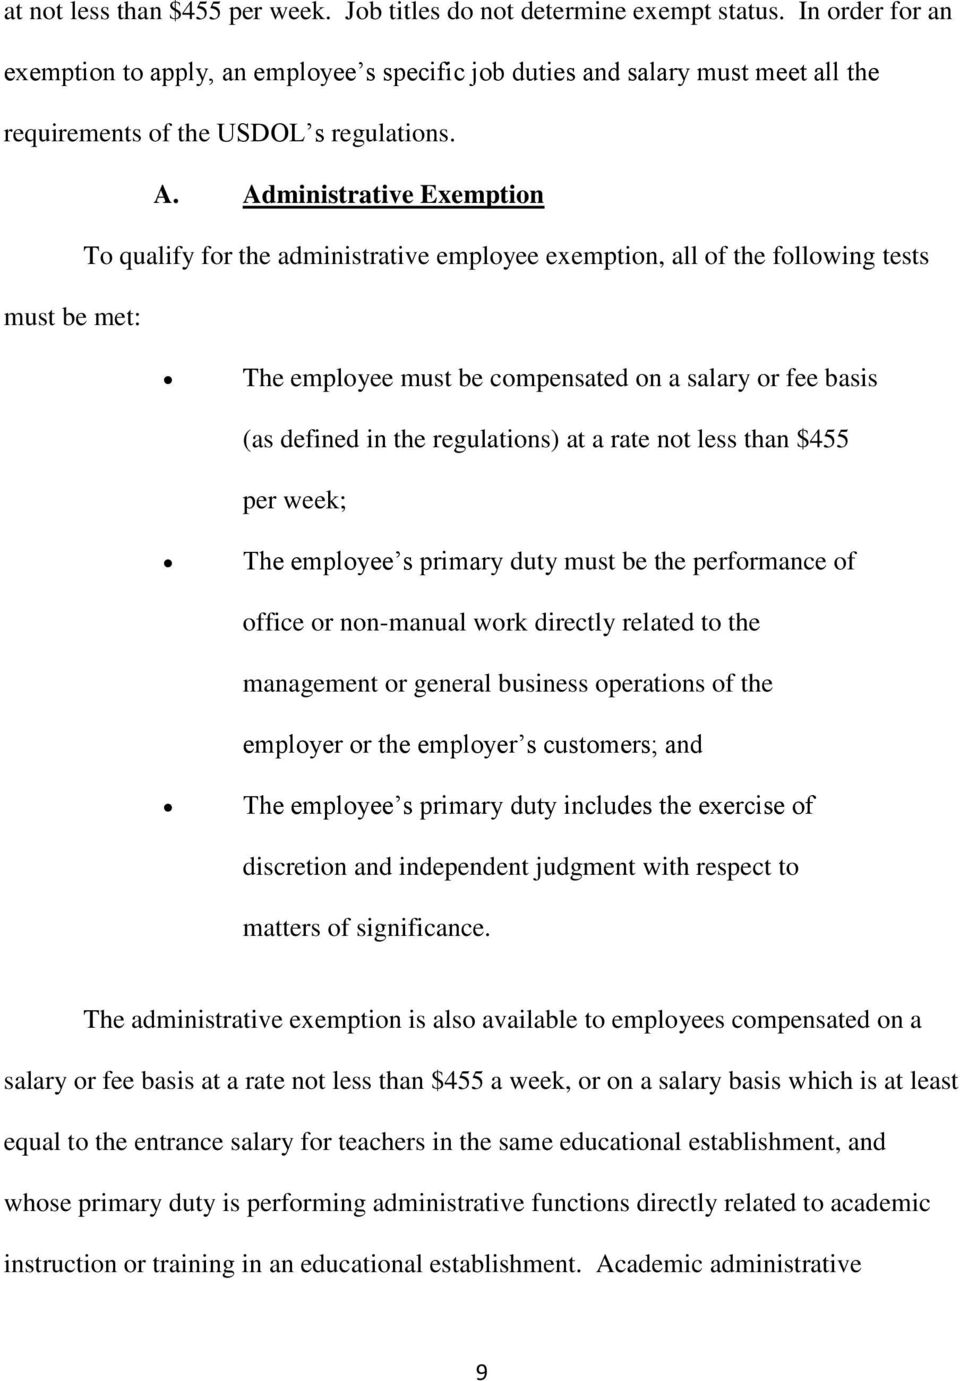 Administrative Exemption To qualify for the administrative employee exemption, all of the following tests must be met: The employee must be compensated on a salary or fee basis (as defined in the